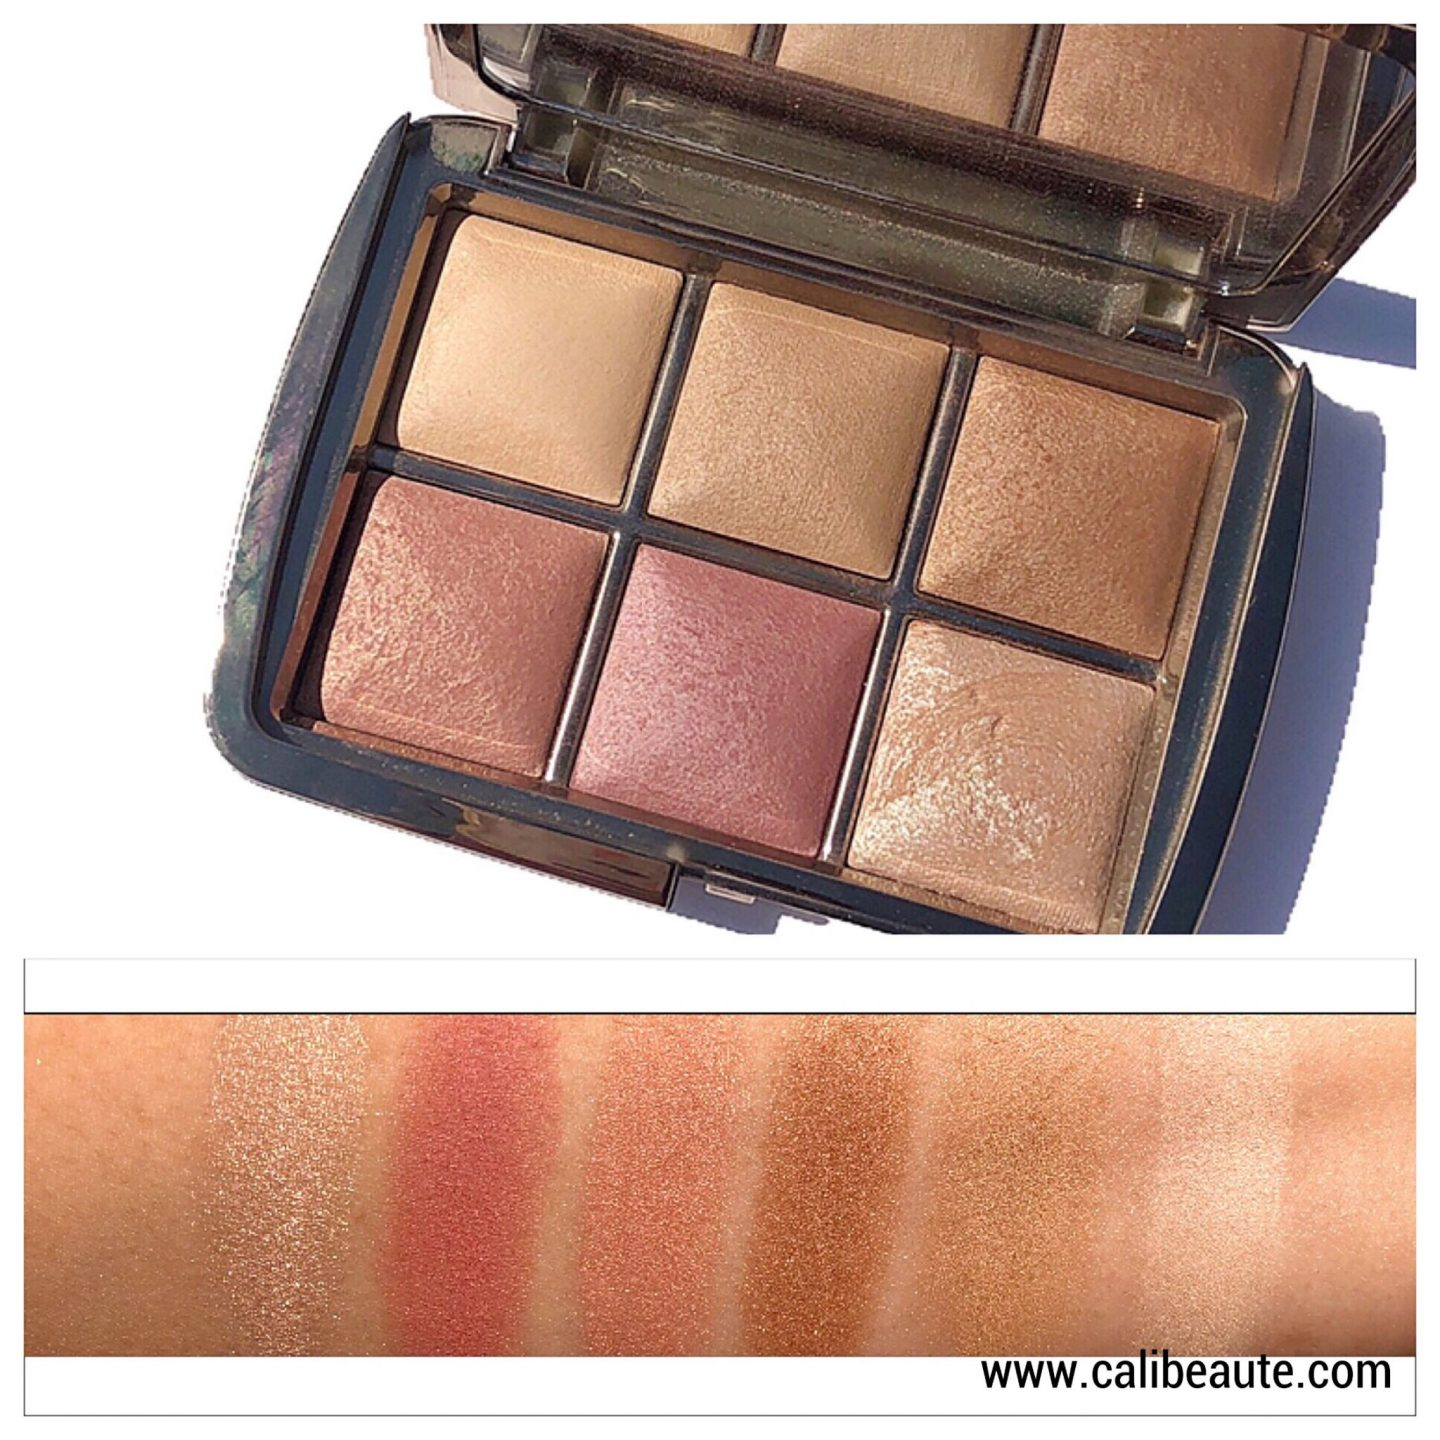 Hourglass Ambient Unlocked review and swatches www.calibeaute.com